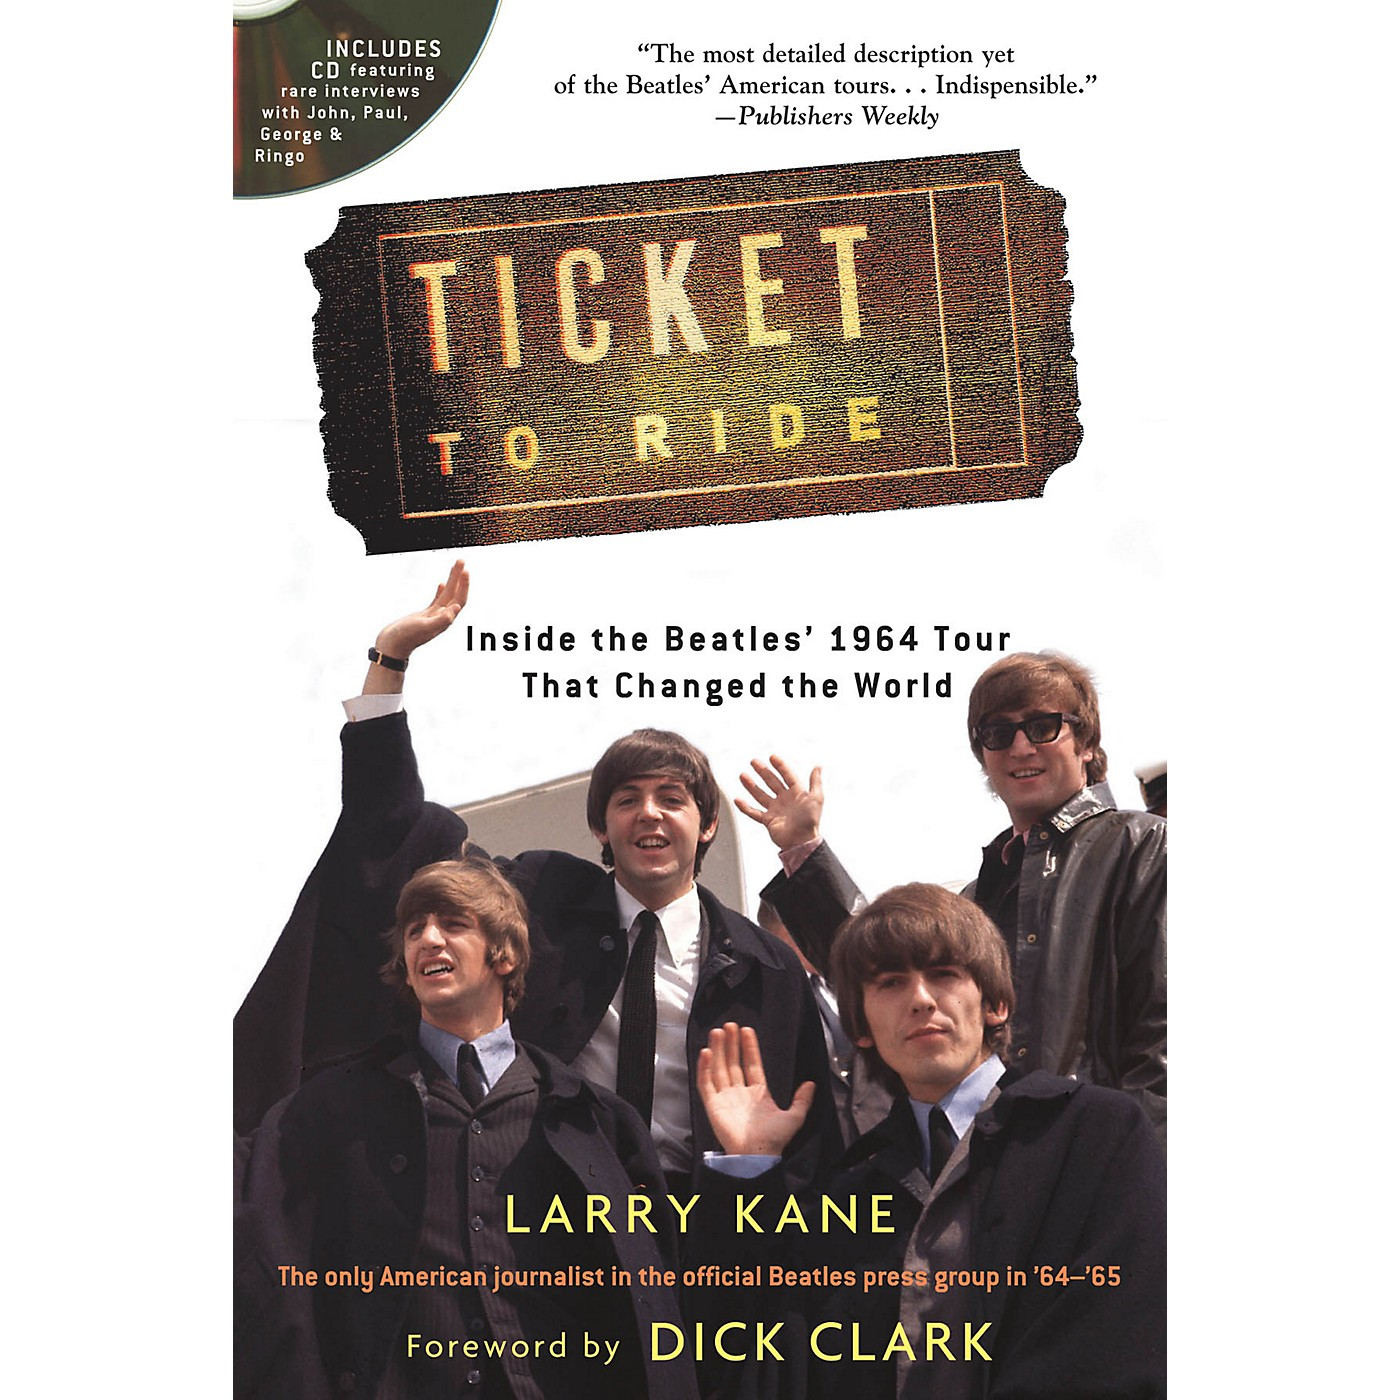 Backbeat Books Ticket to Ride Book Series Softcover with CD Written by Larry Kane thumbnail